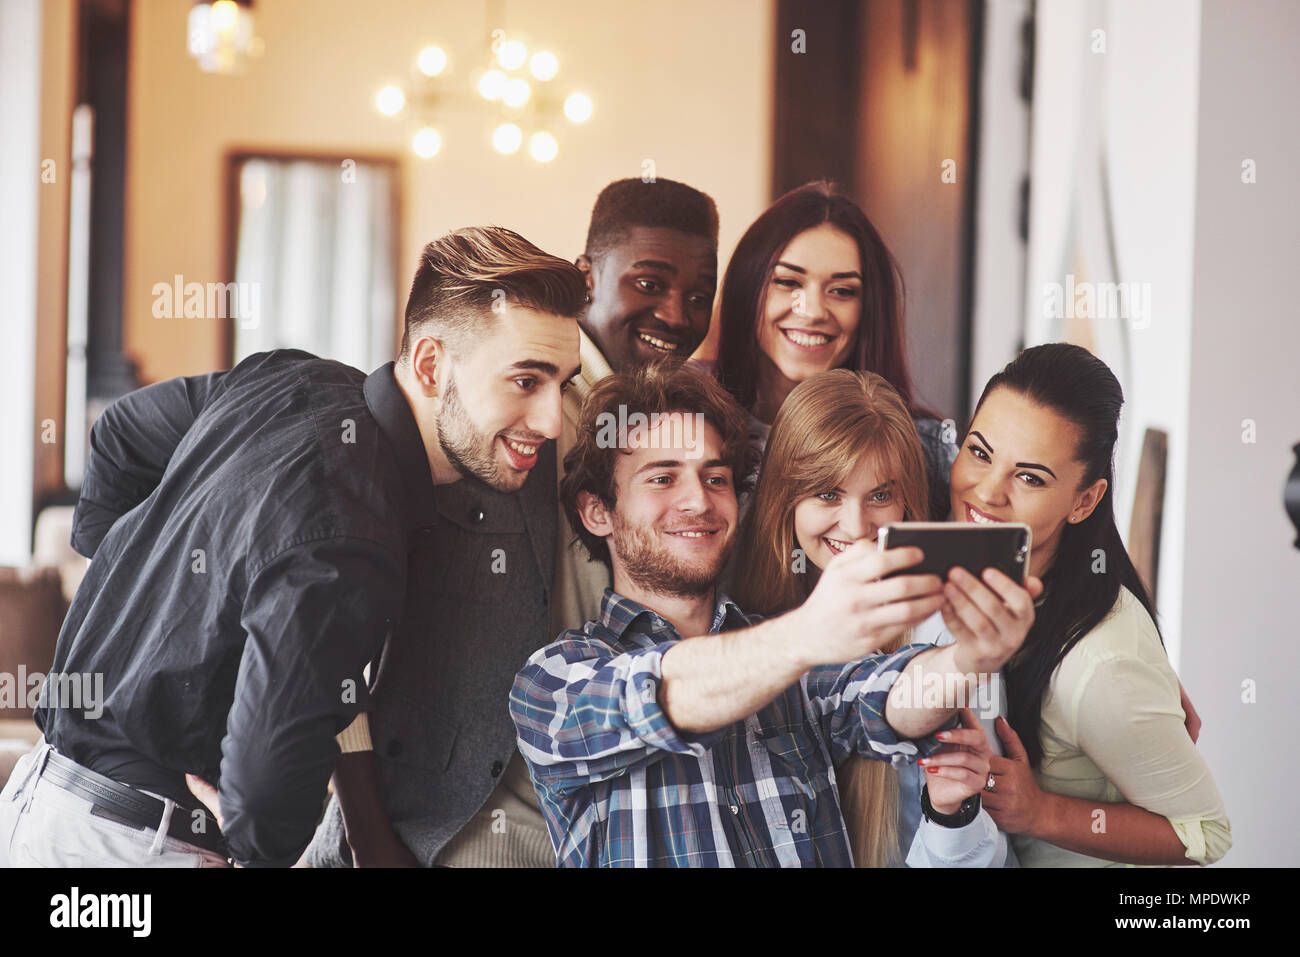 Multiracial people having fun at cafe taking a selfie with mobile phone. Group of young friends sitting at restaurant taking self portrait with smart phone Stock Photo